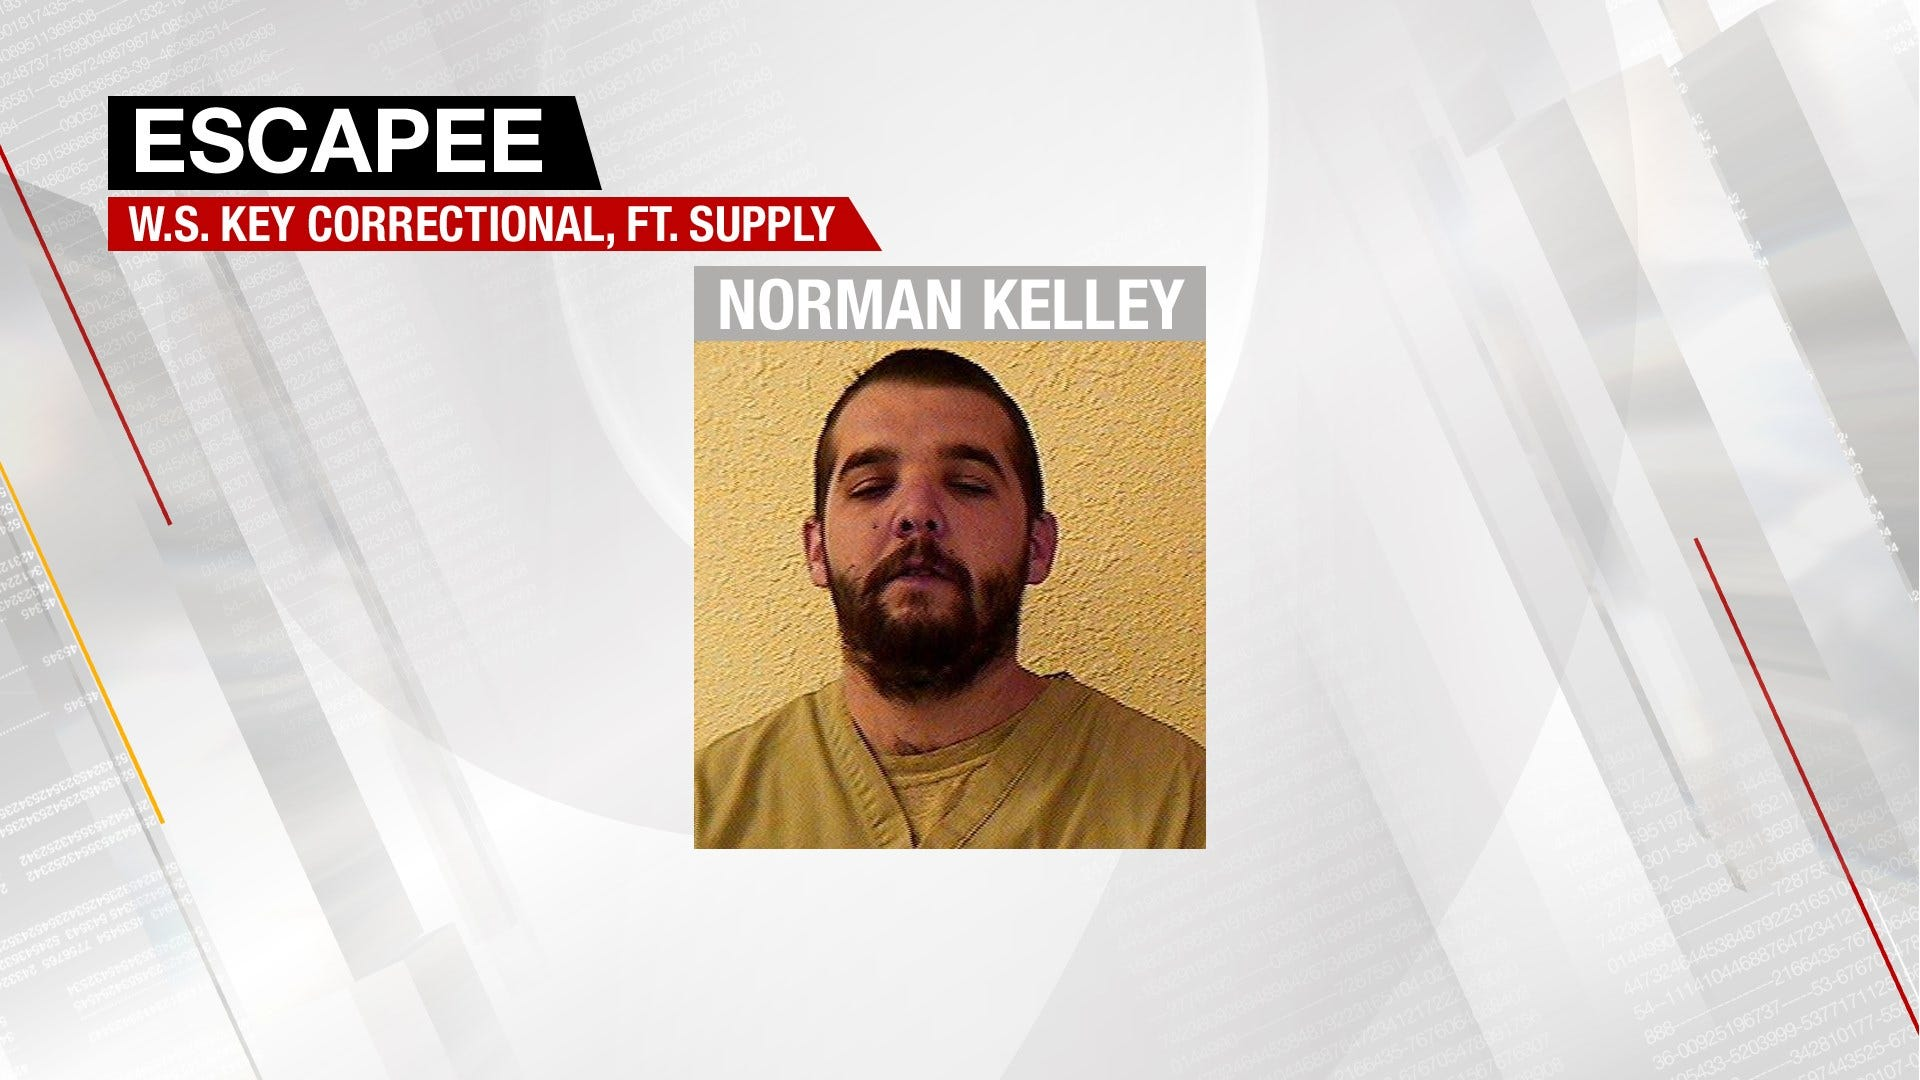 Escapee From W.S. Key Correctional Center Caught